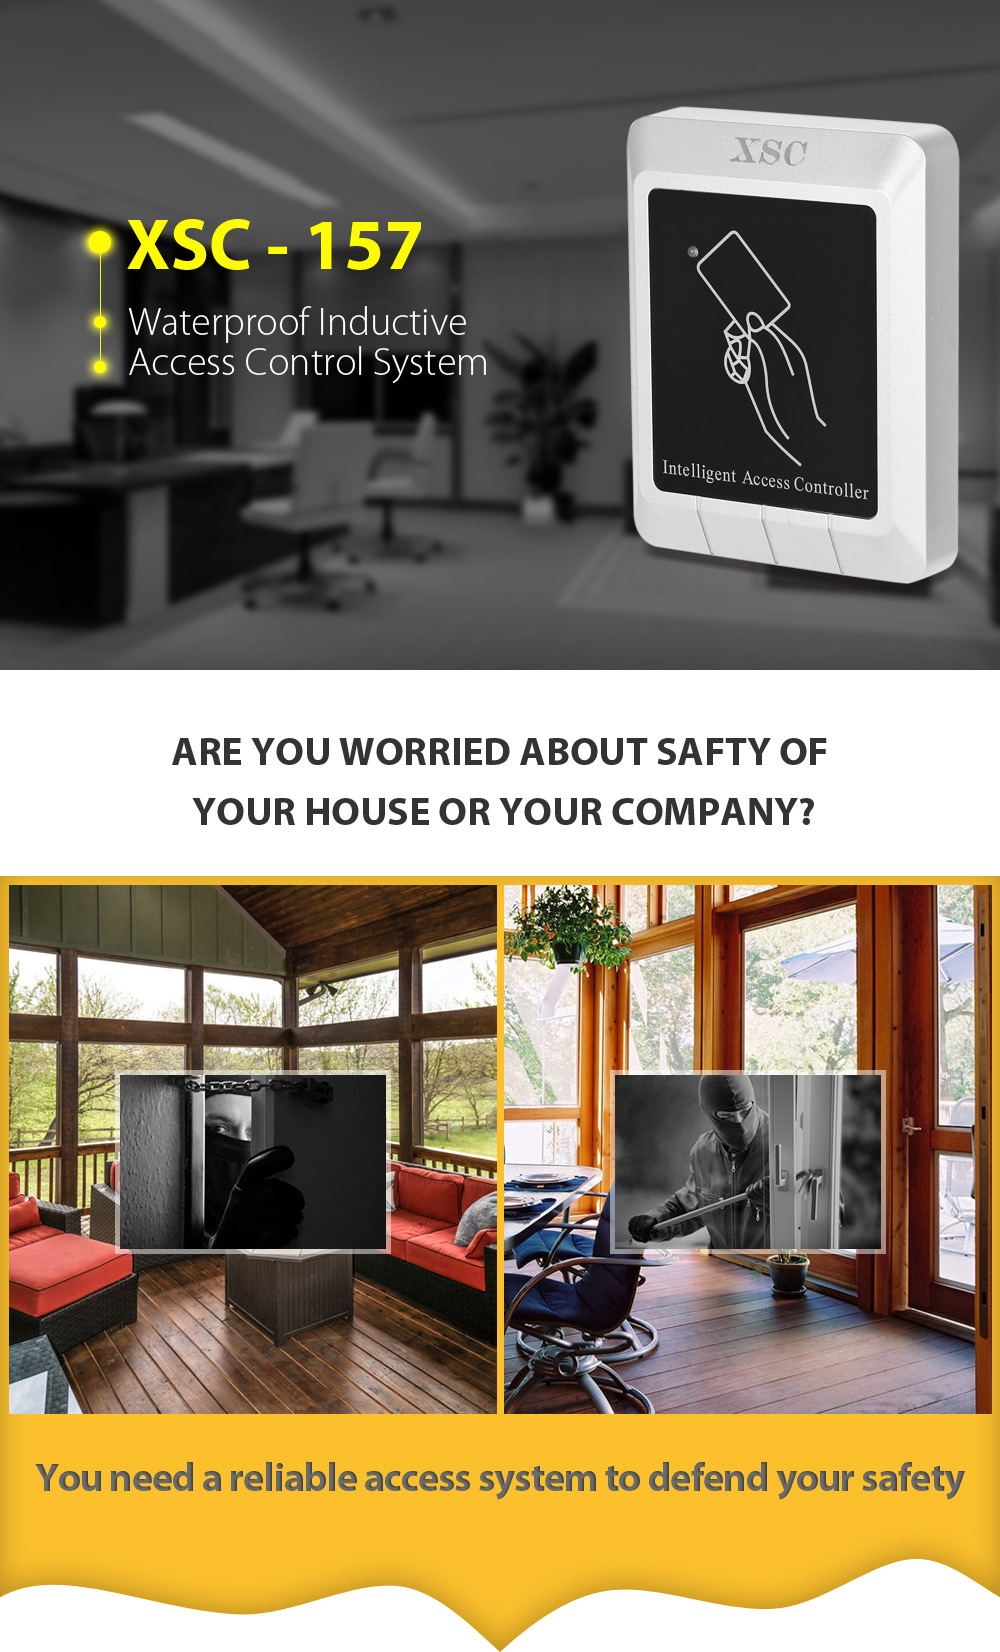 XSC - 157 Water-resistance Inductive Access Control System for 2000 Users